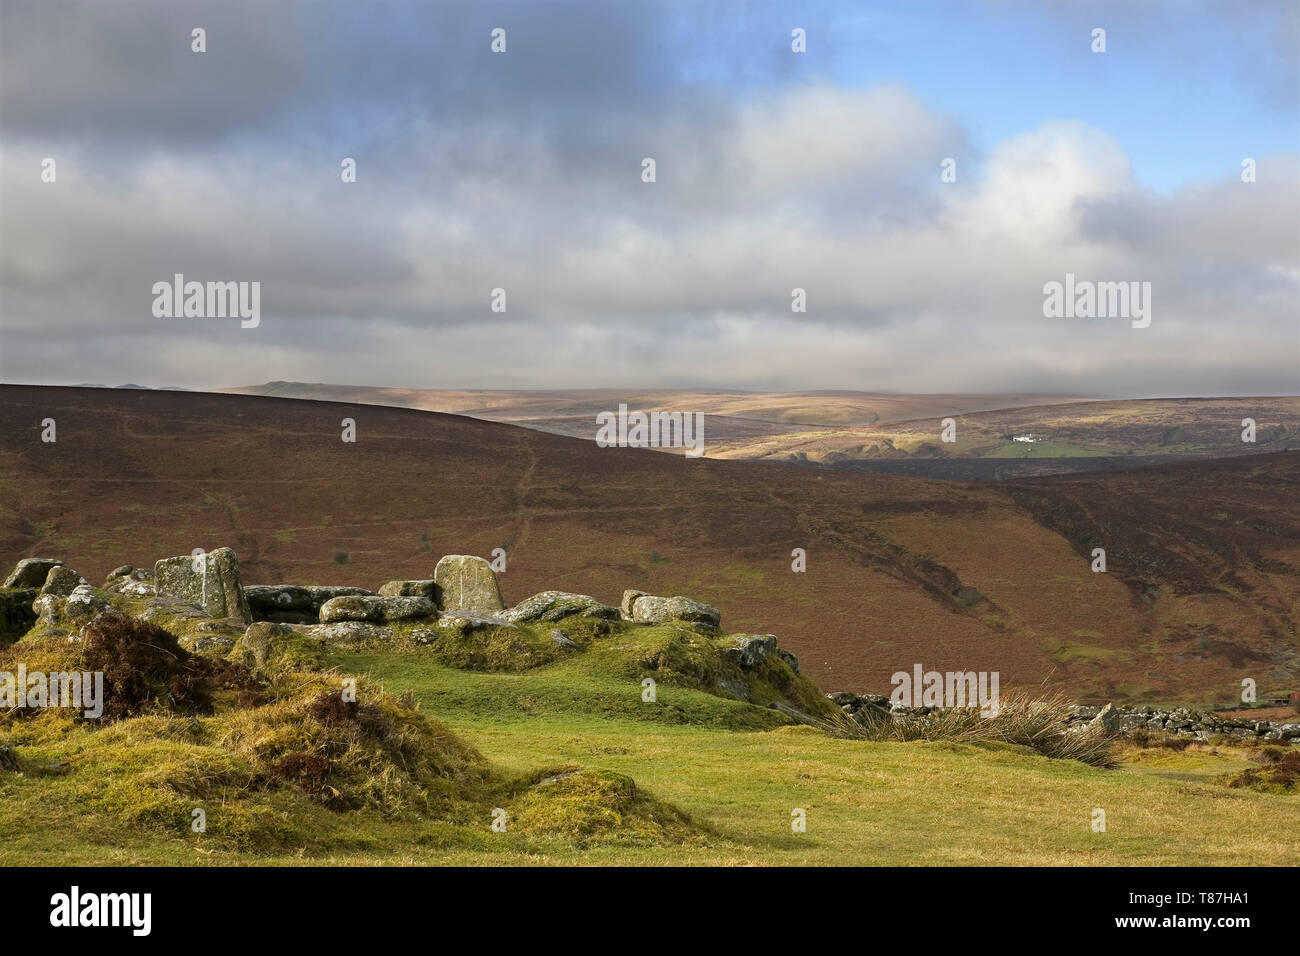 Grimspound Bronze-Age settlement, Dartmoor, Devon, UK - Stock Image